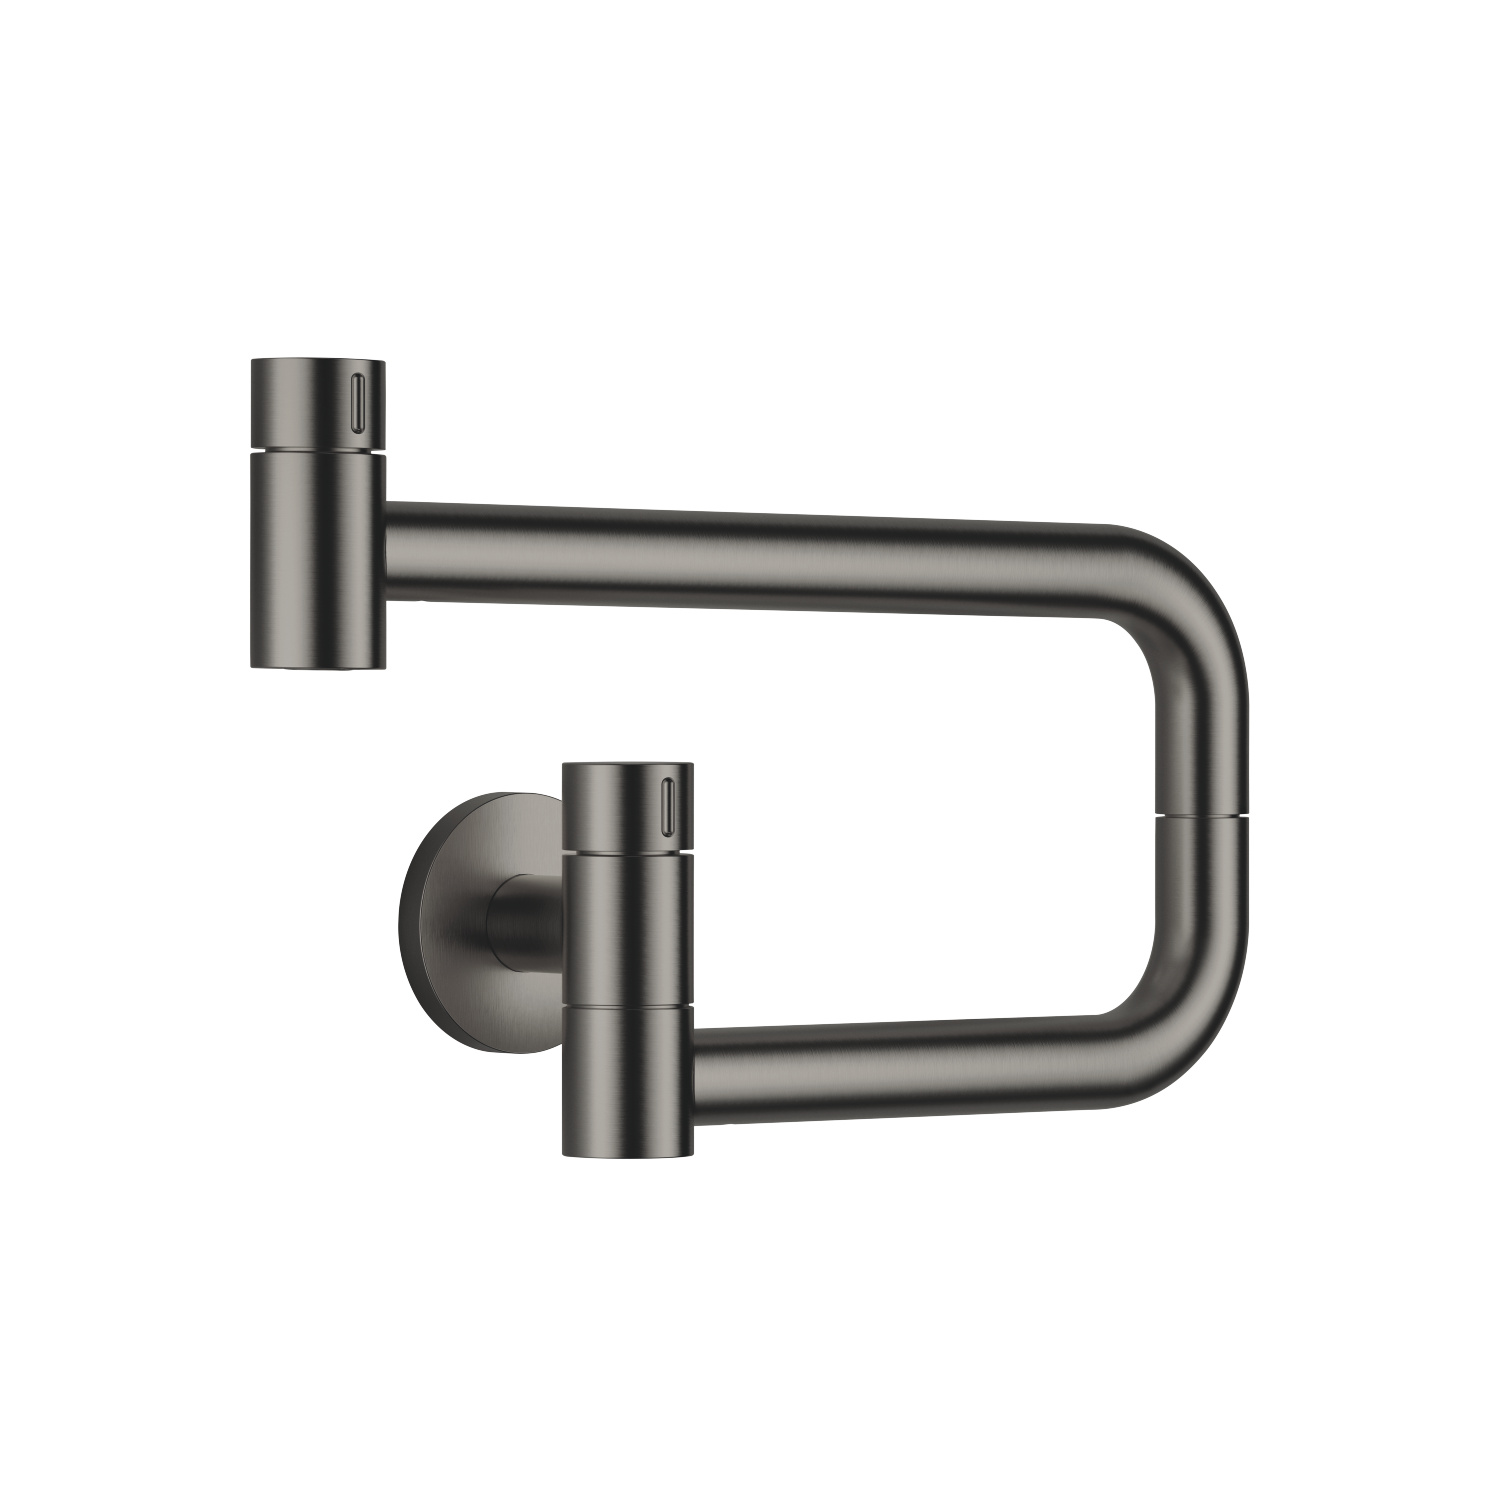 POT FILLER Cold-water valve - Dark Platinum matt